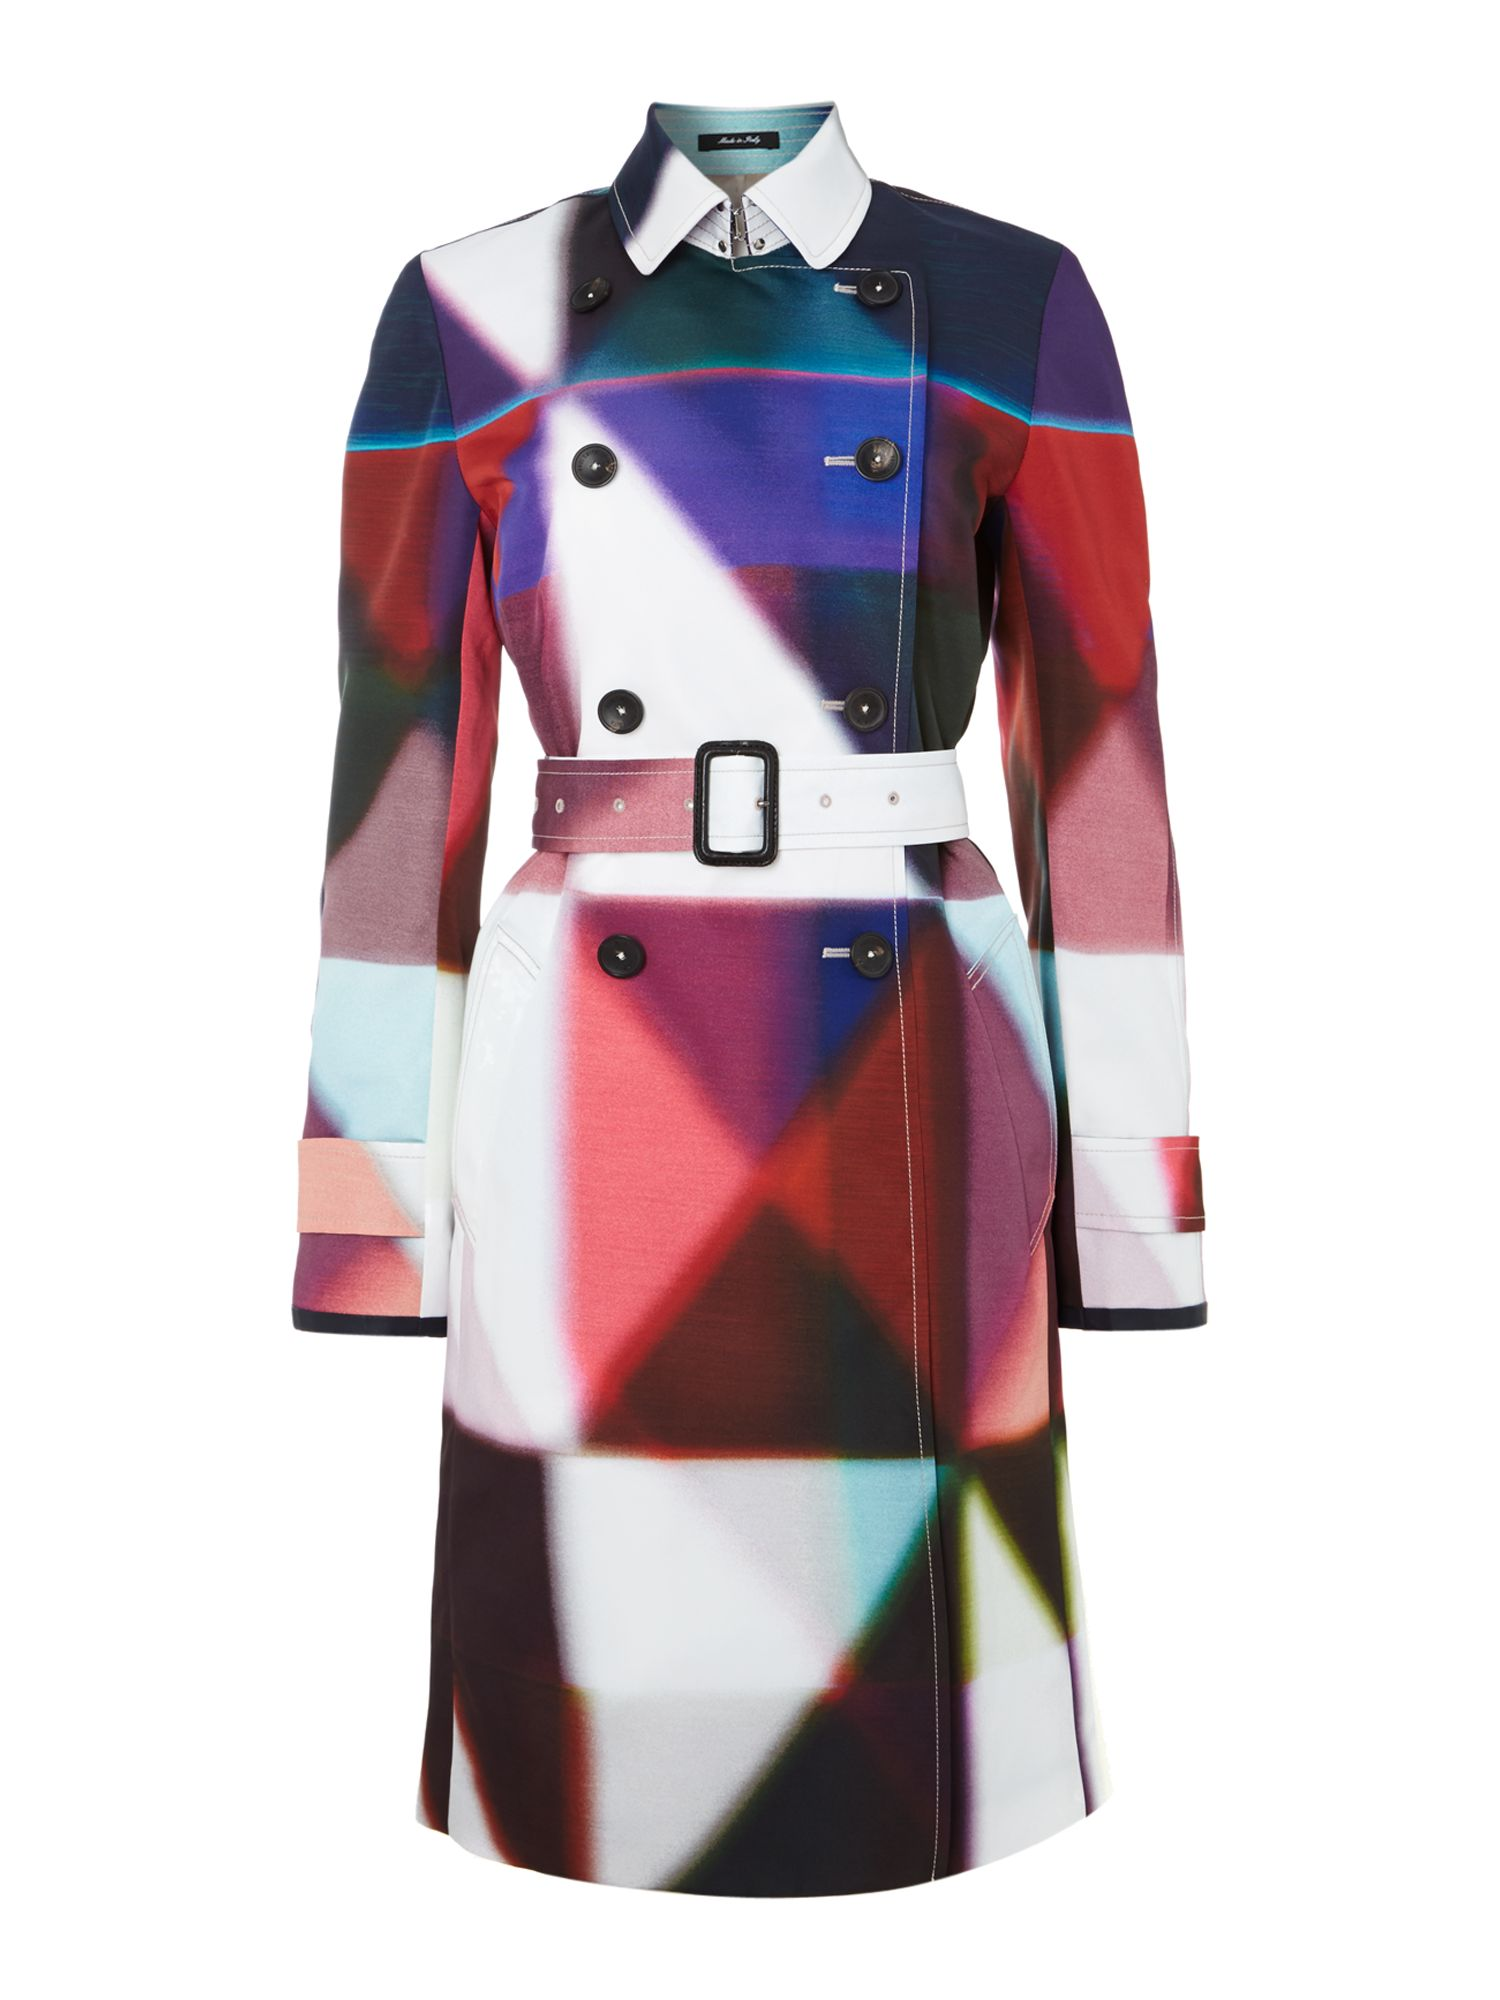 Paul Smith Black Label Printed trench coat, Multi-Coloured